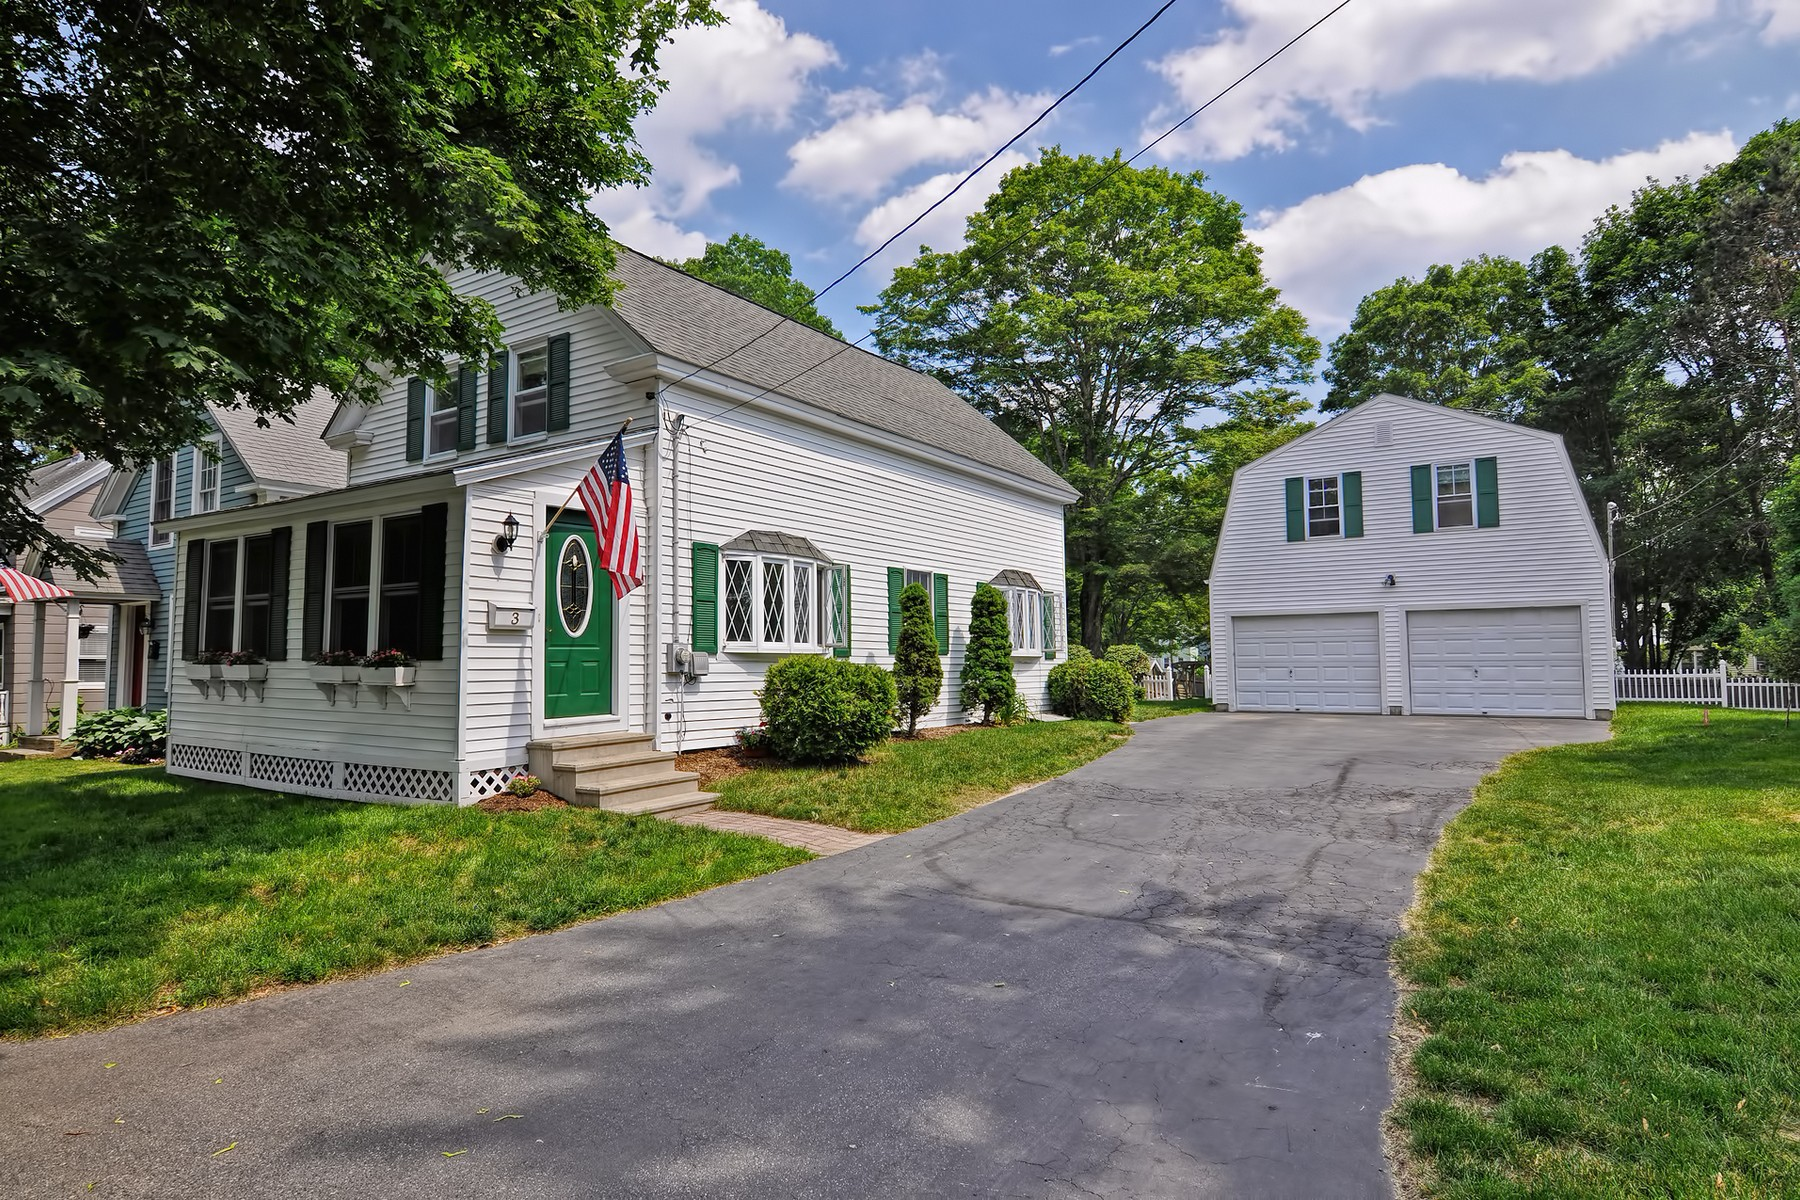 Single Family Home for Sale at Quaint New England Colonial Near Downtown Westborough 3 Elm Street Westborough, Massachusetts 01581 United States